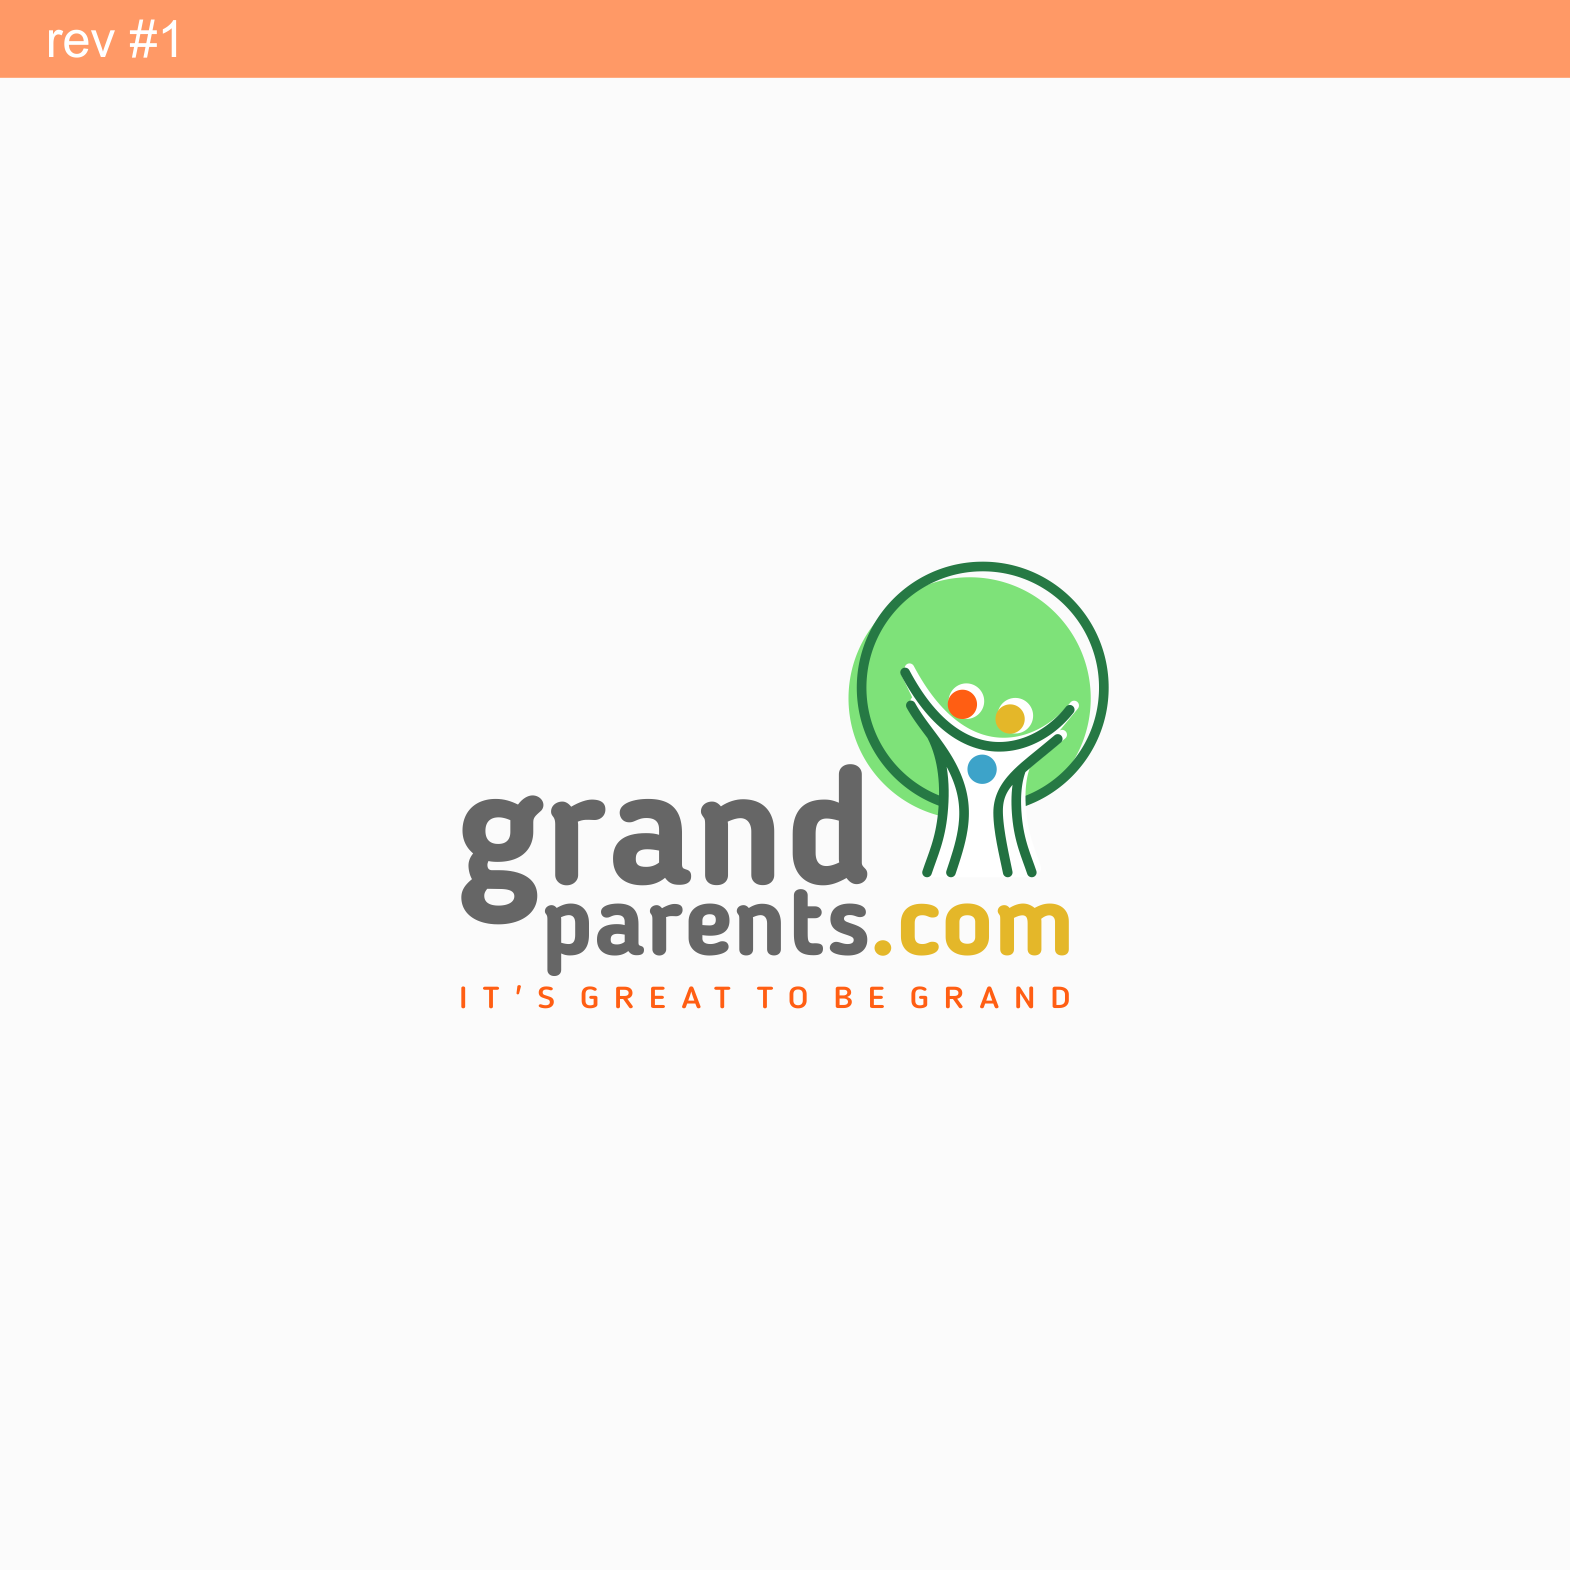 Grandparents.com needs a modern and clean new look